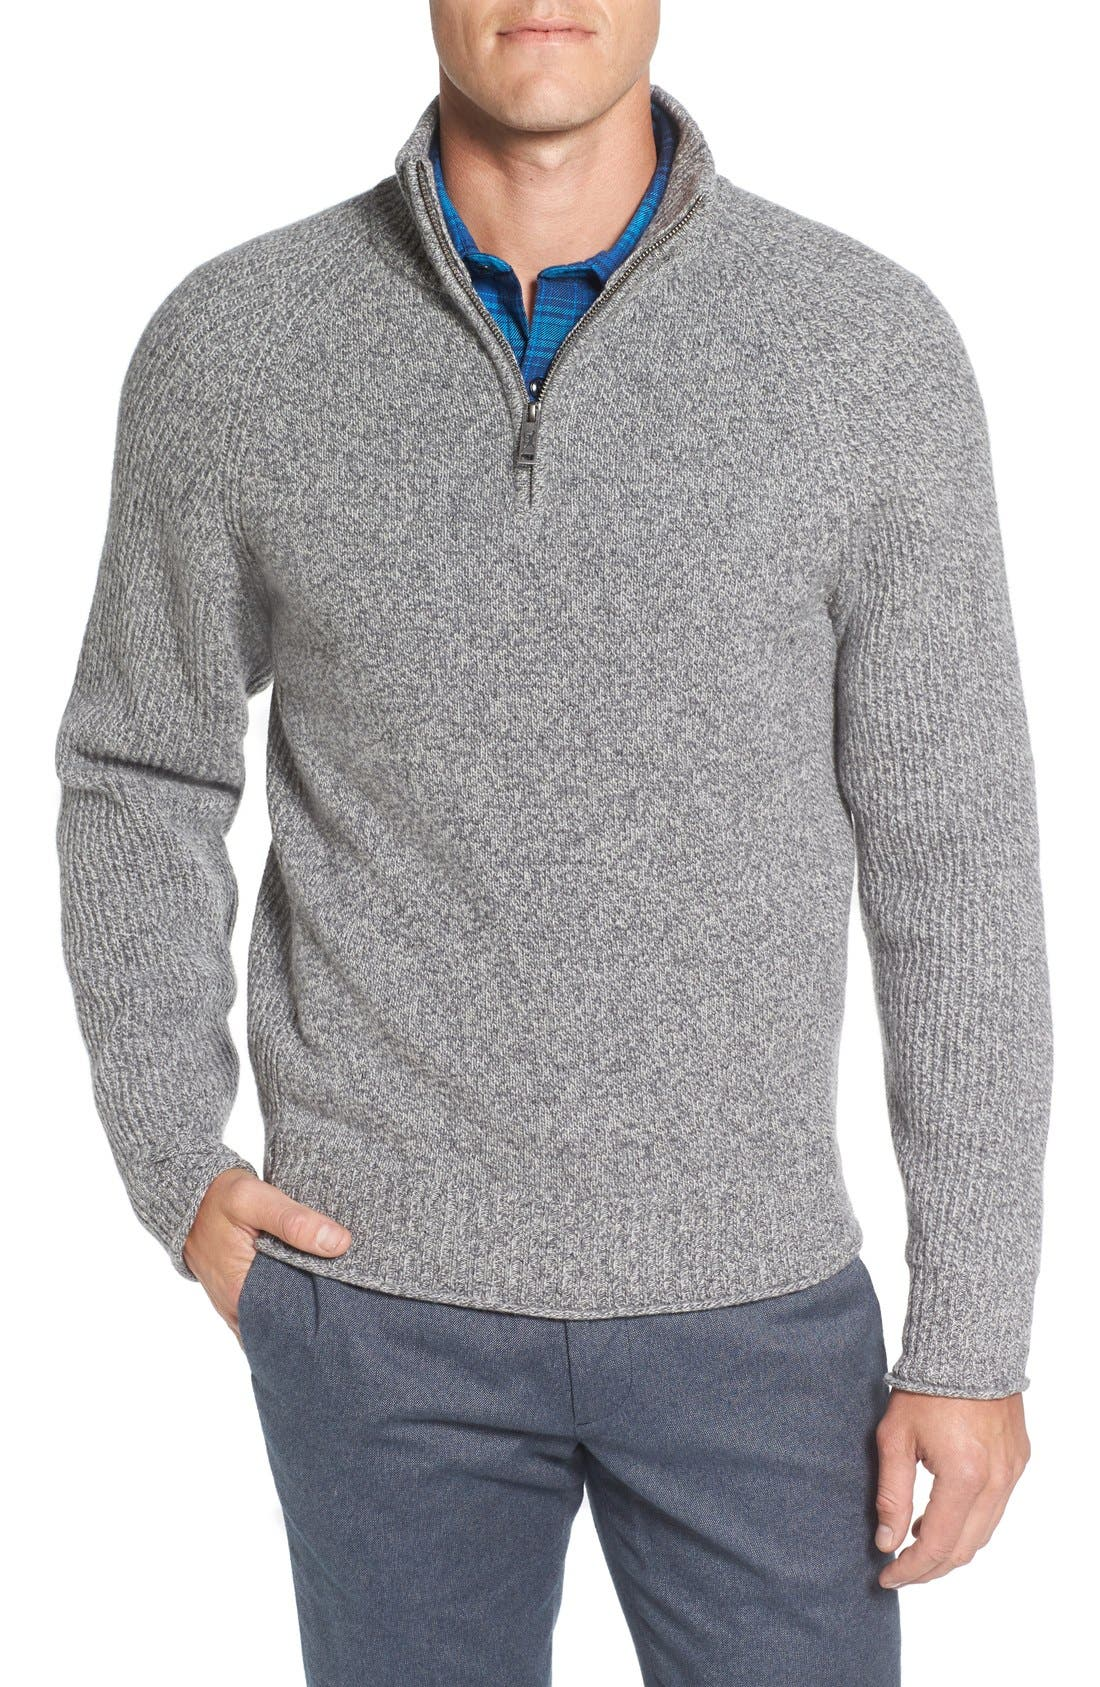 Stredwick Lambswool Sweater,                             Main thumbnail 4, color,